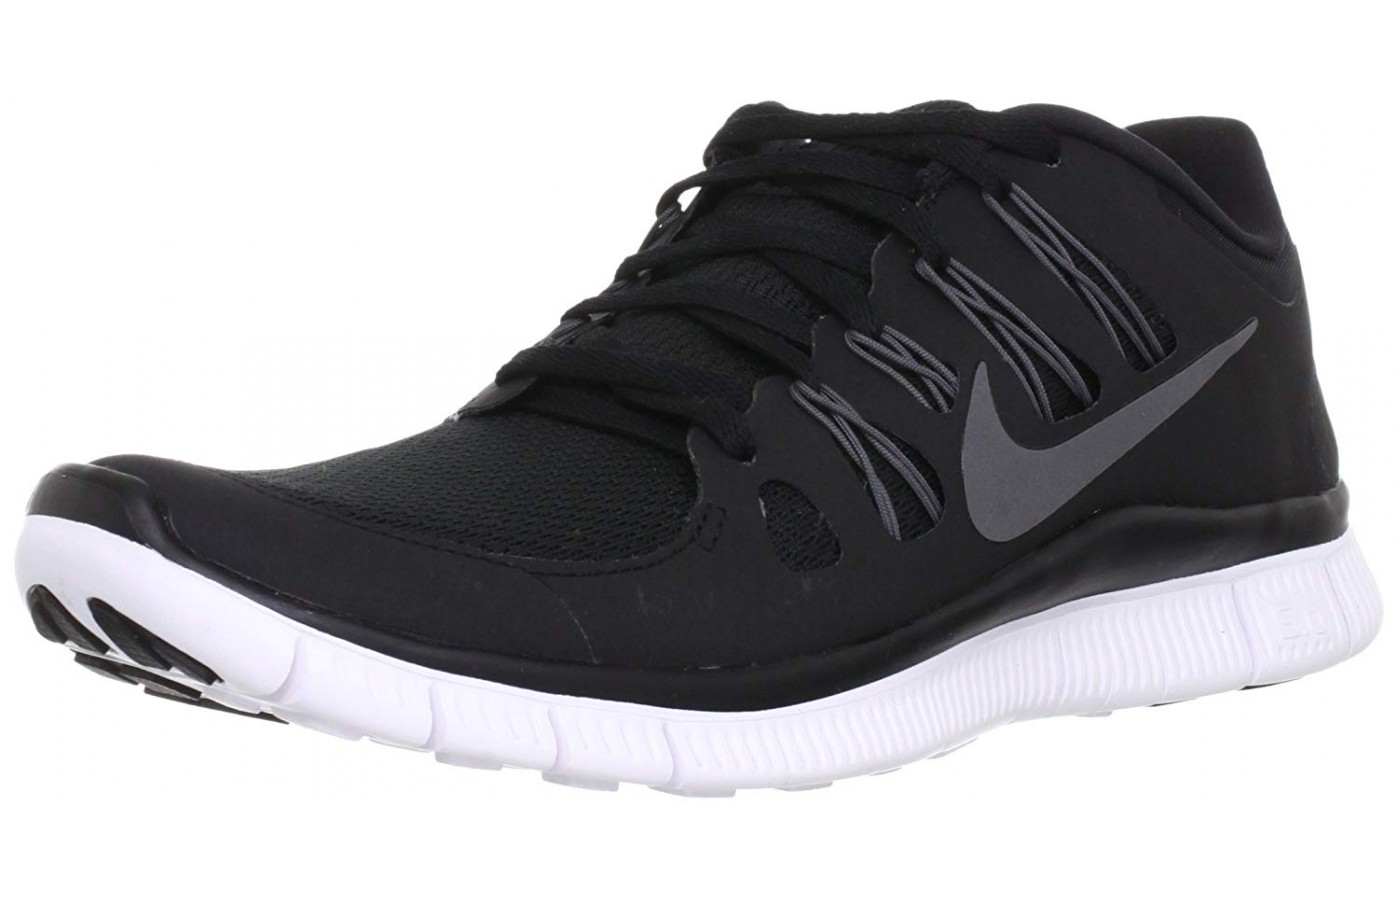 The Nike Free 5.0 is available in many different colors.